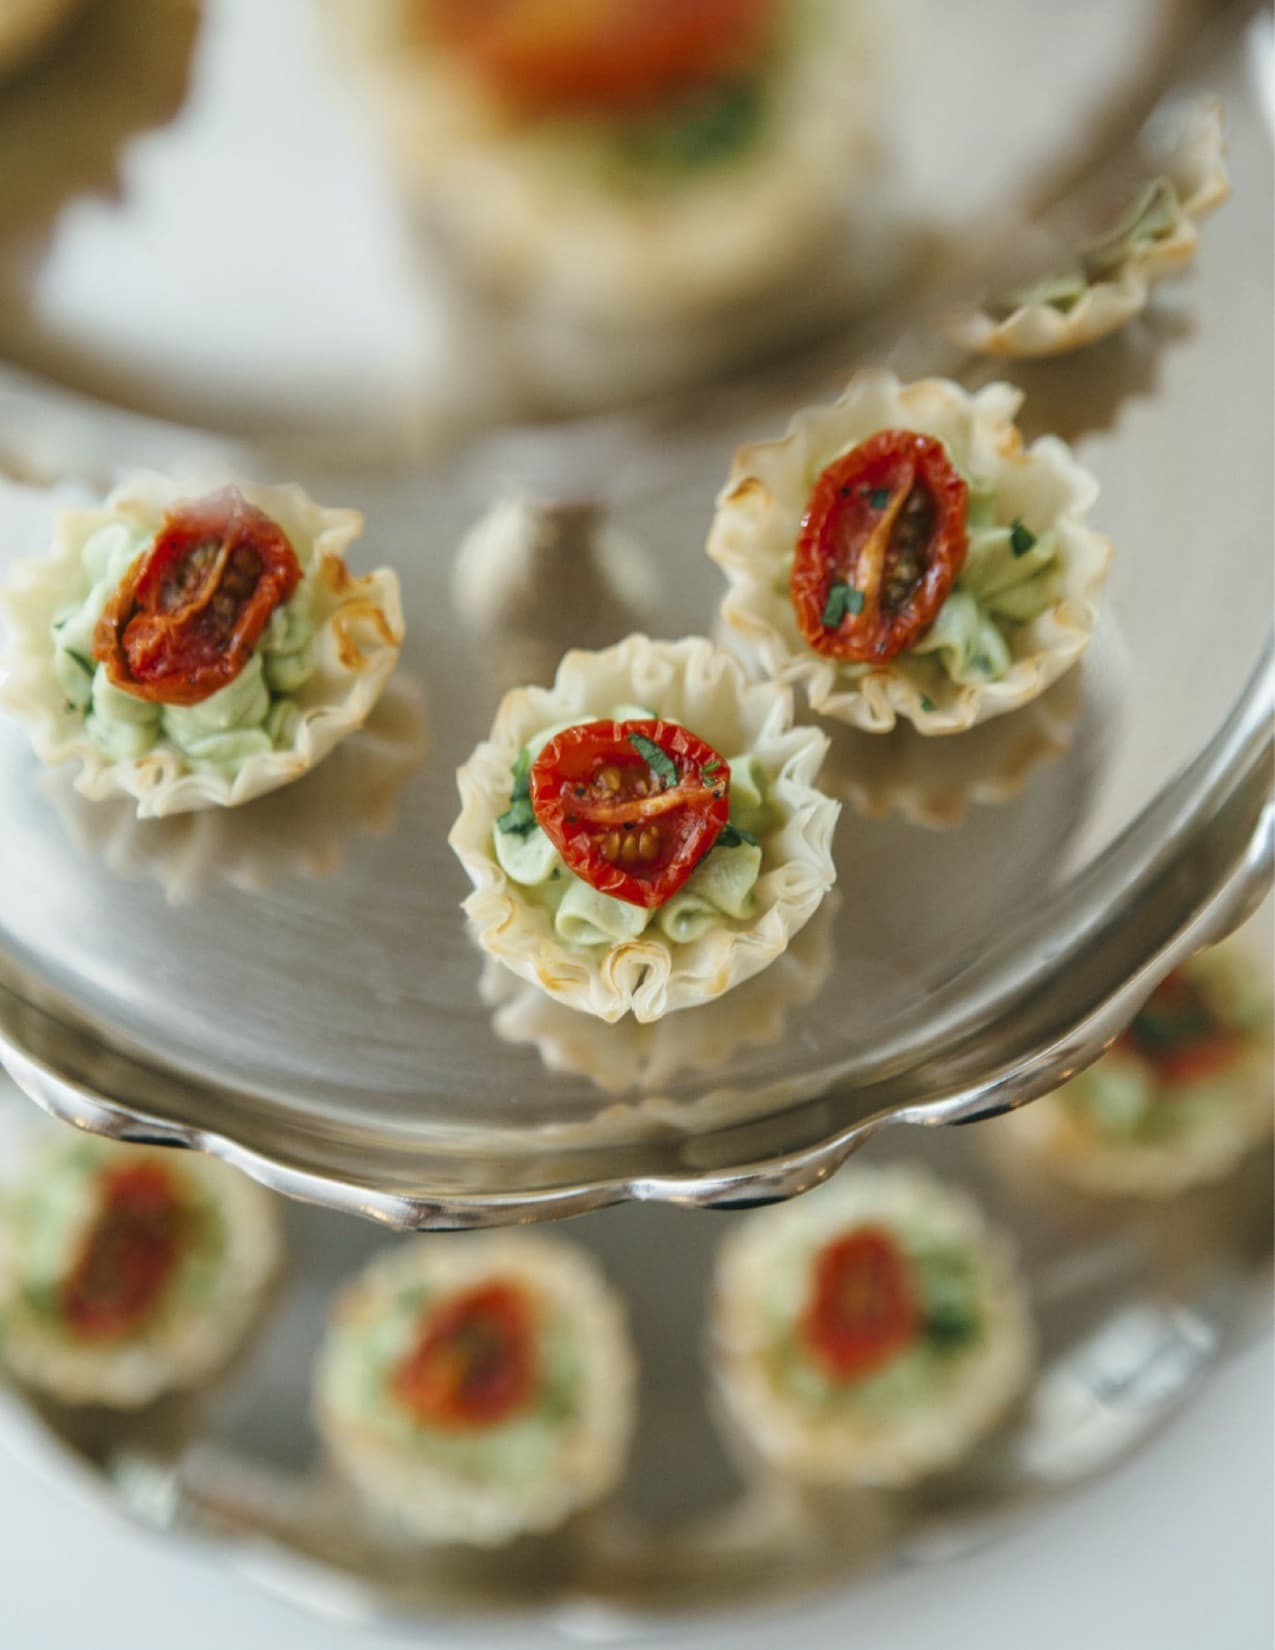 Pastry Cups with Roasted Tomato and Avocado Chive Crema